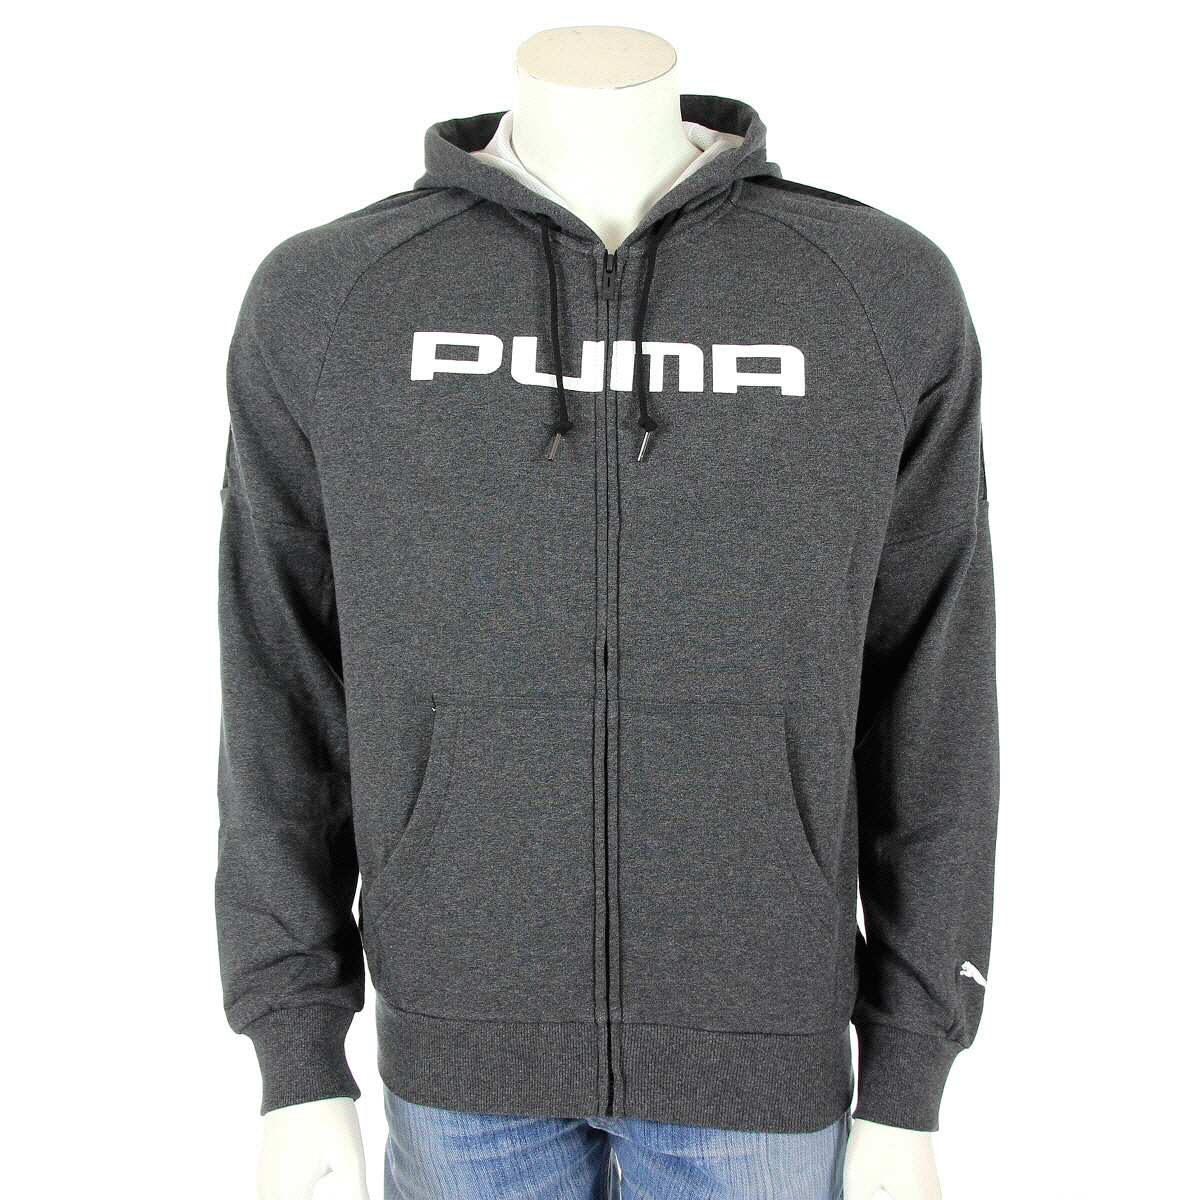 v tement veste sport puma homme f athletics h jacket terry taille gris grise ebay. Black Bedroom Furniture Sets. Home Design Ideas